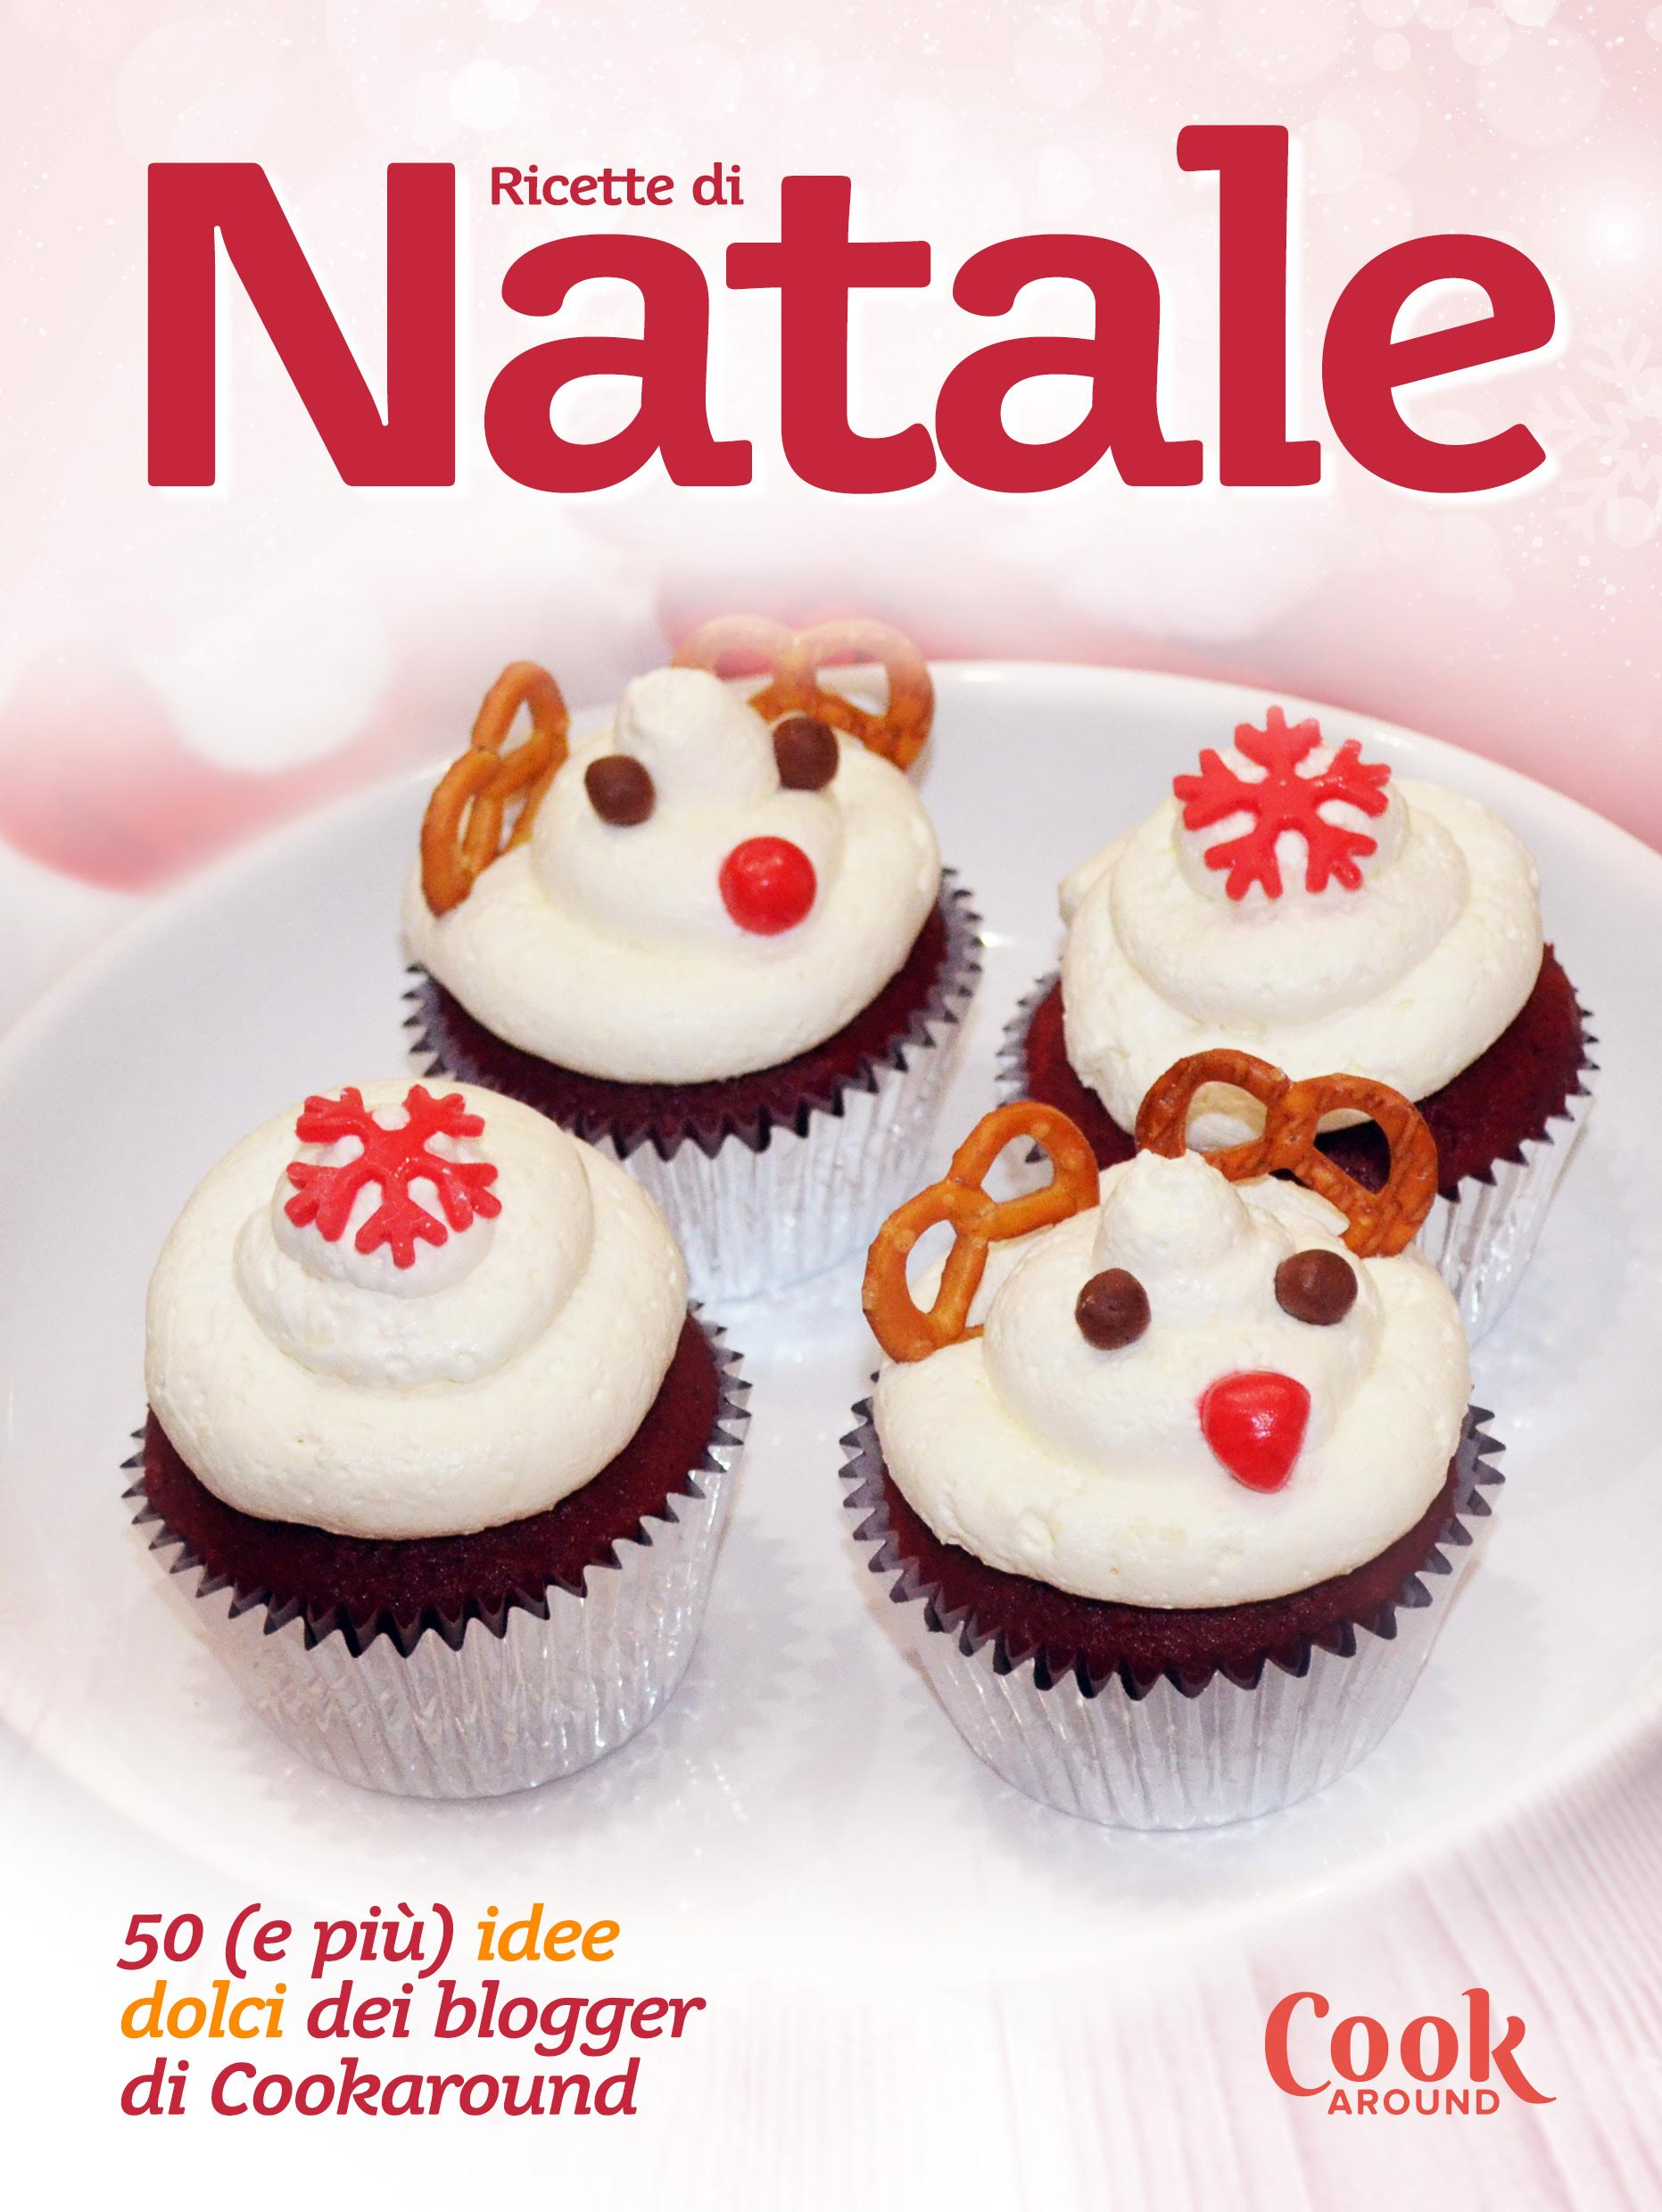 Scarica Ricette di Natale - Dolci